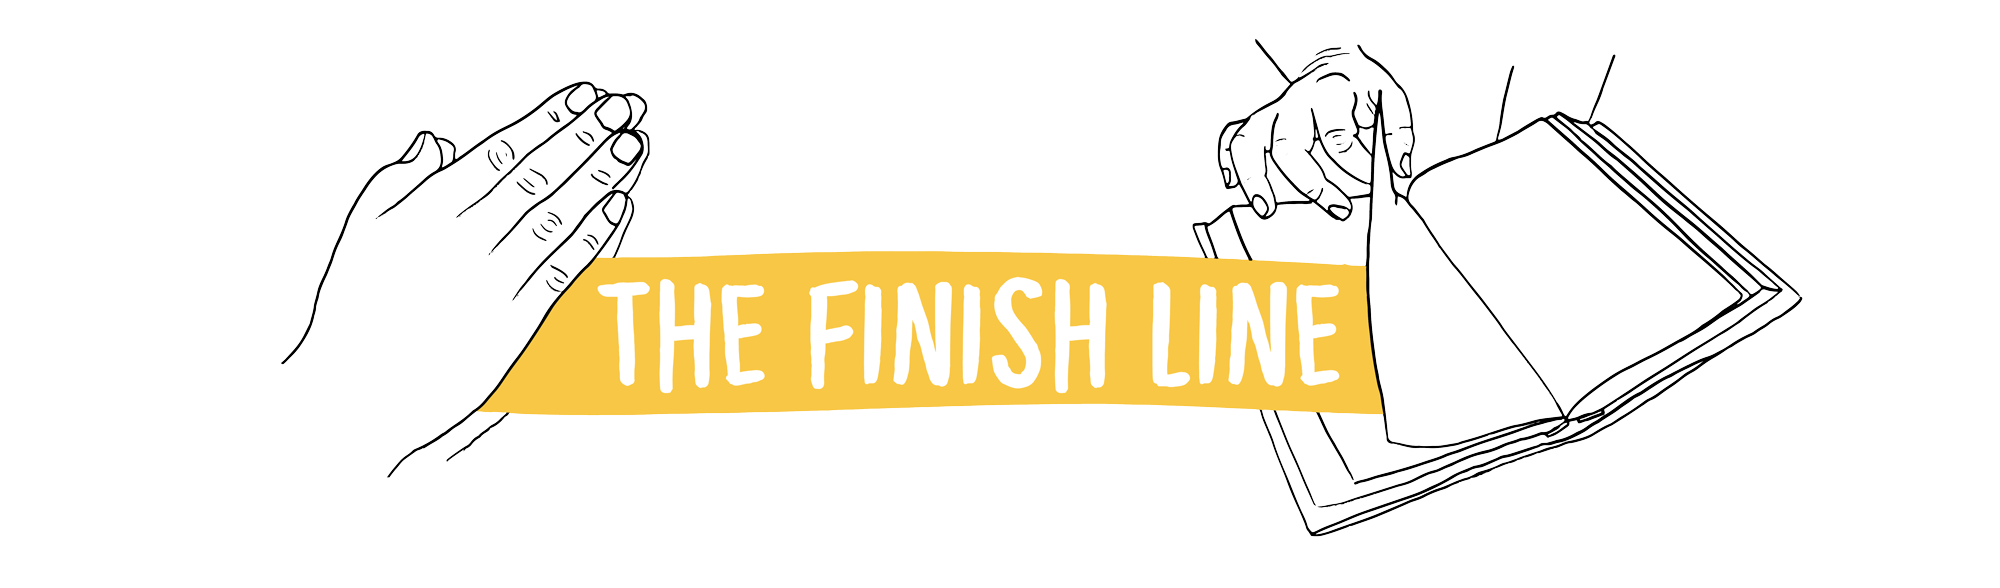 The Finish Line 2021